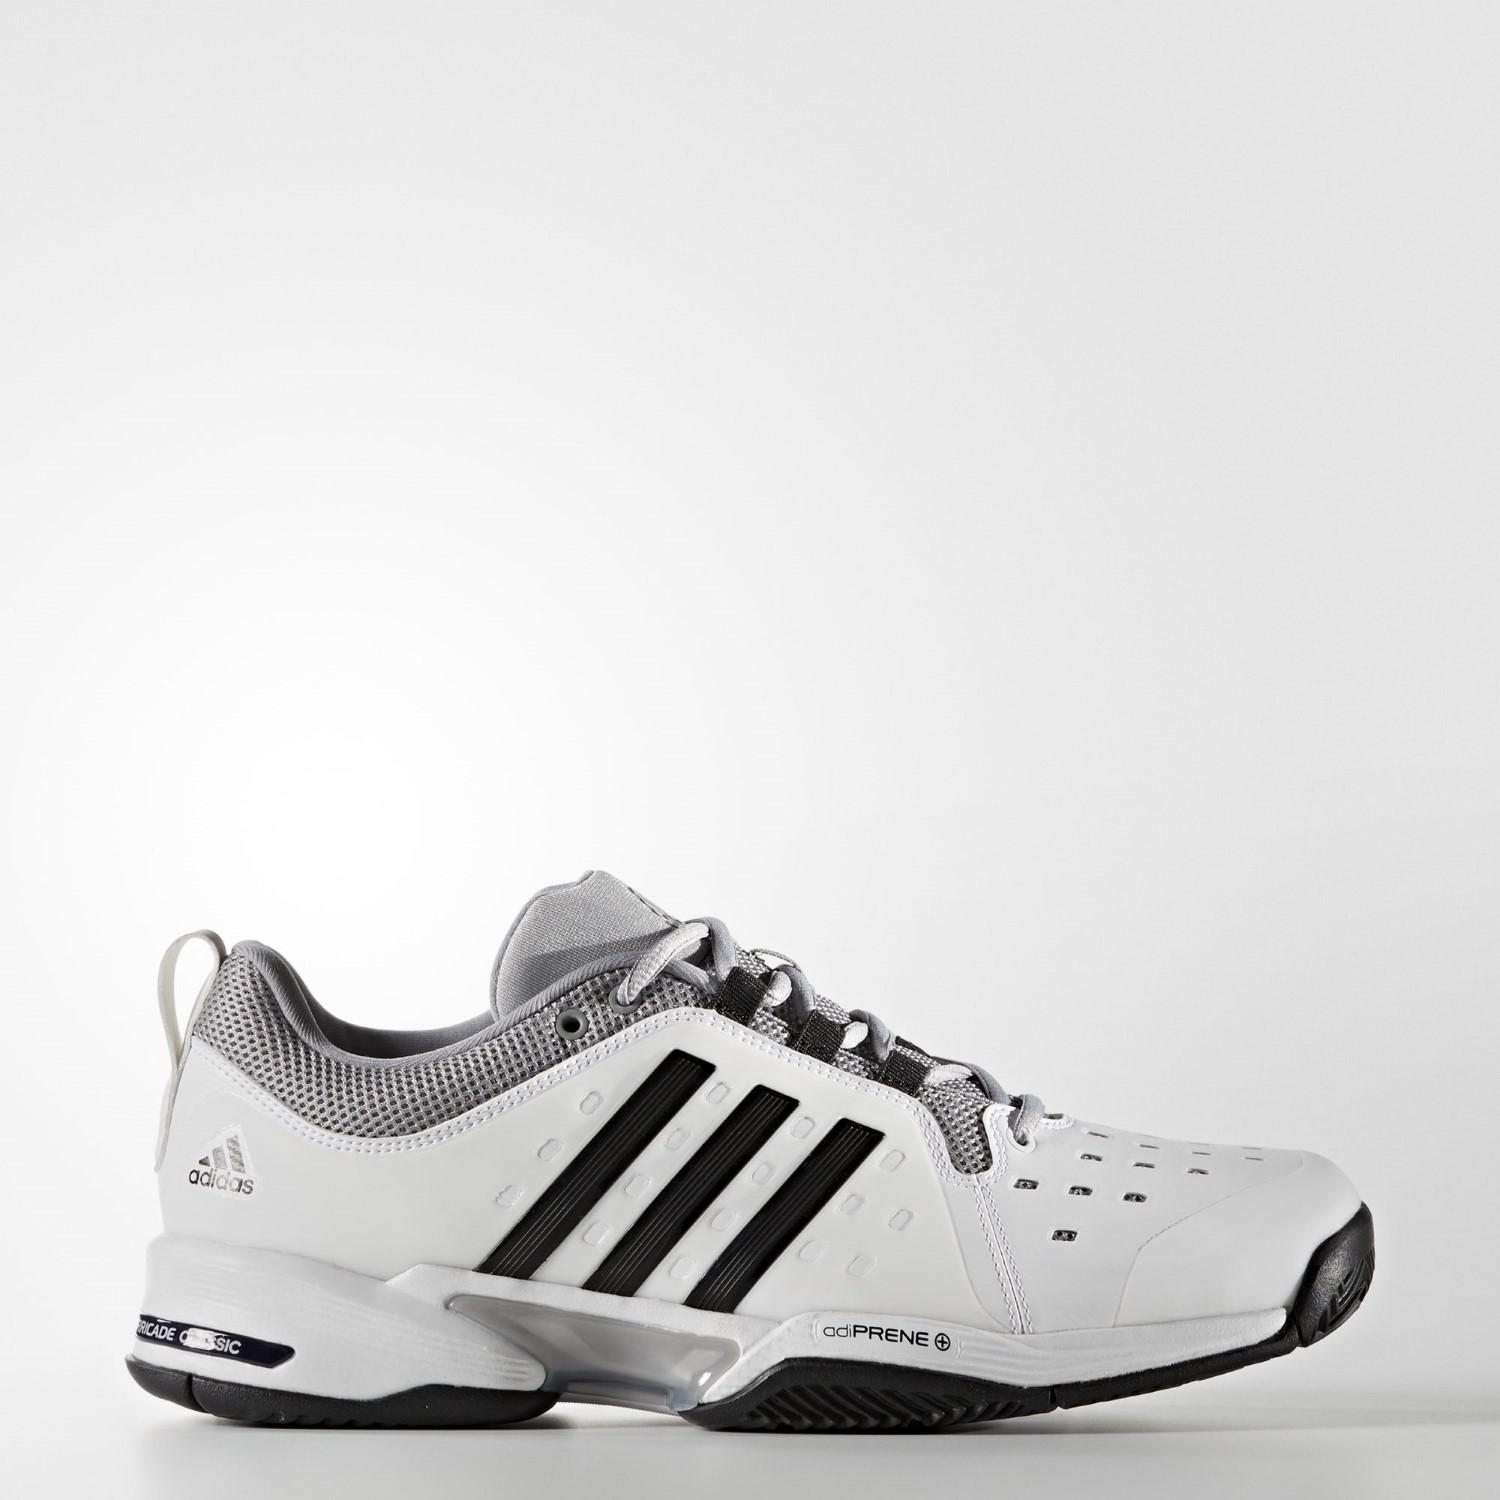 new concept b72a7 a9726 Lyst - adidas Originals Barricade Classic Wide 4e Shoes in W